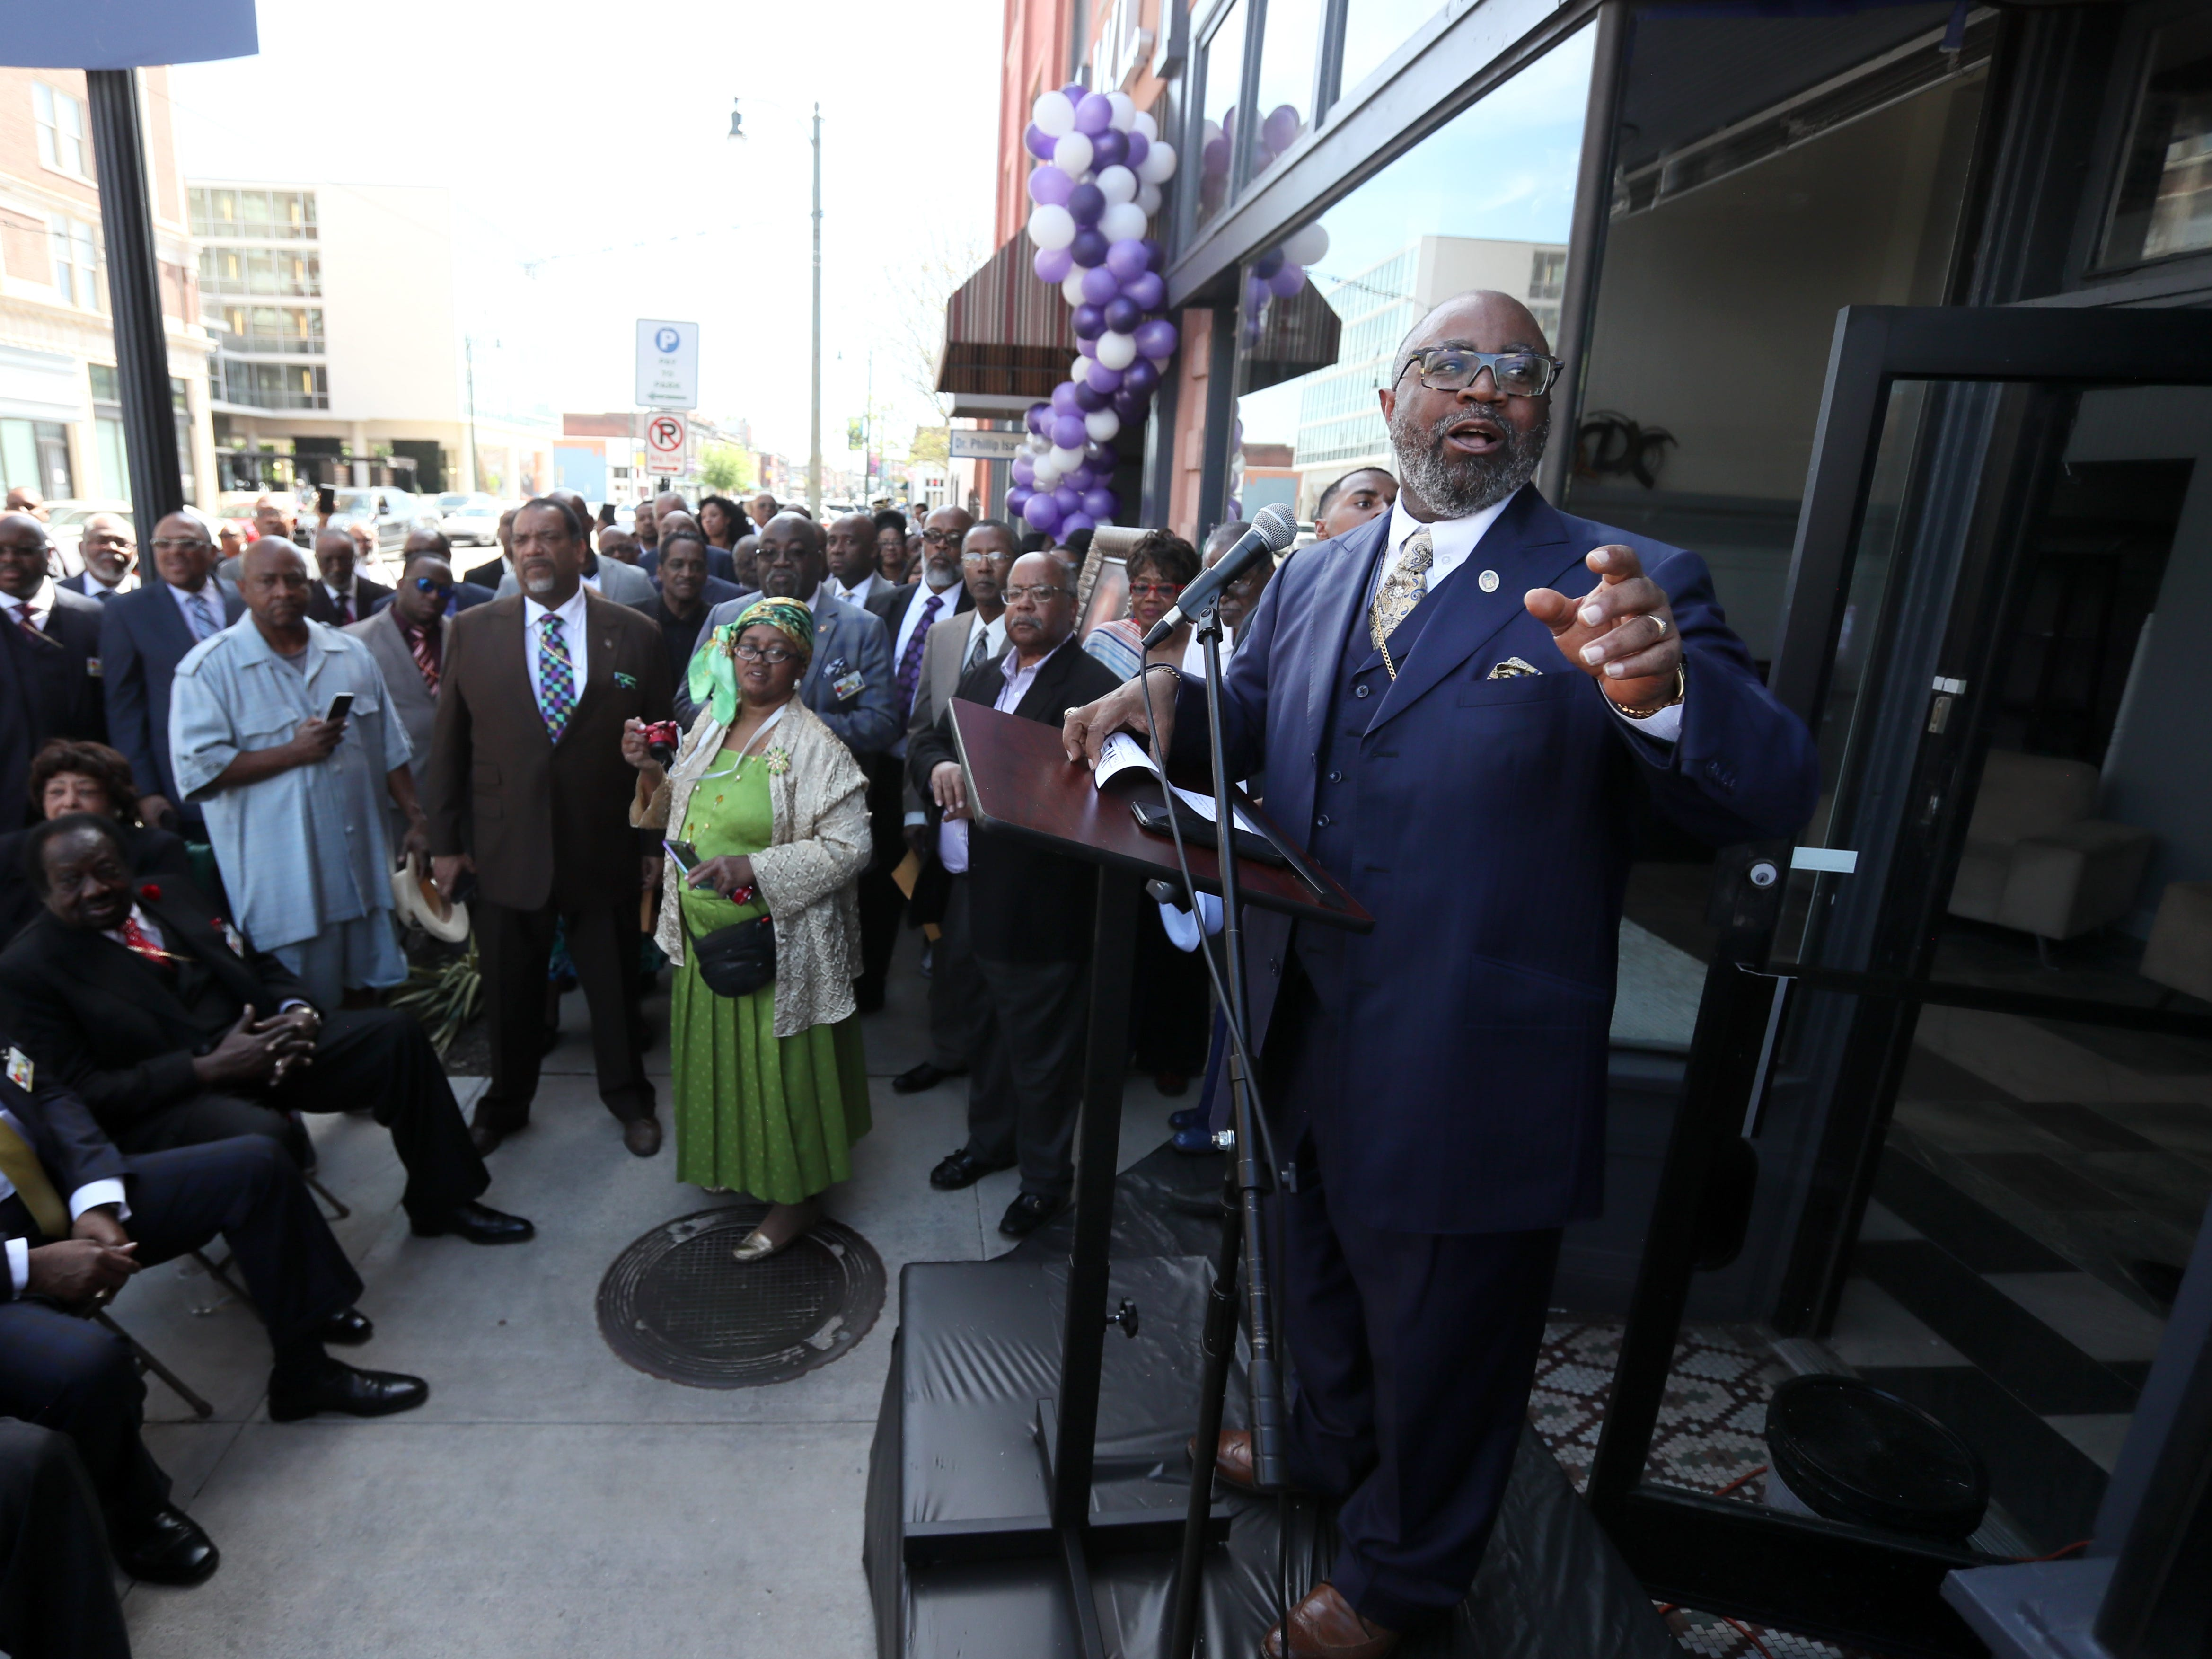 Bishop Brandon Porter speaks to people gathered on South Main Street downtown as the the Adler Building is renamed 'The W.L.' in honor of his late father, Bishop W.L. Porter, on Wednesday, April 10, 2019.